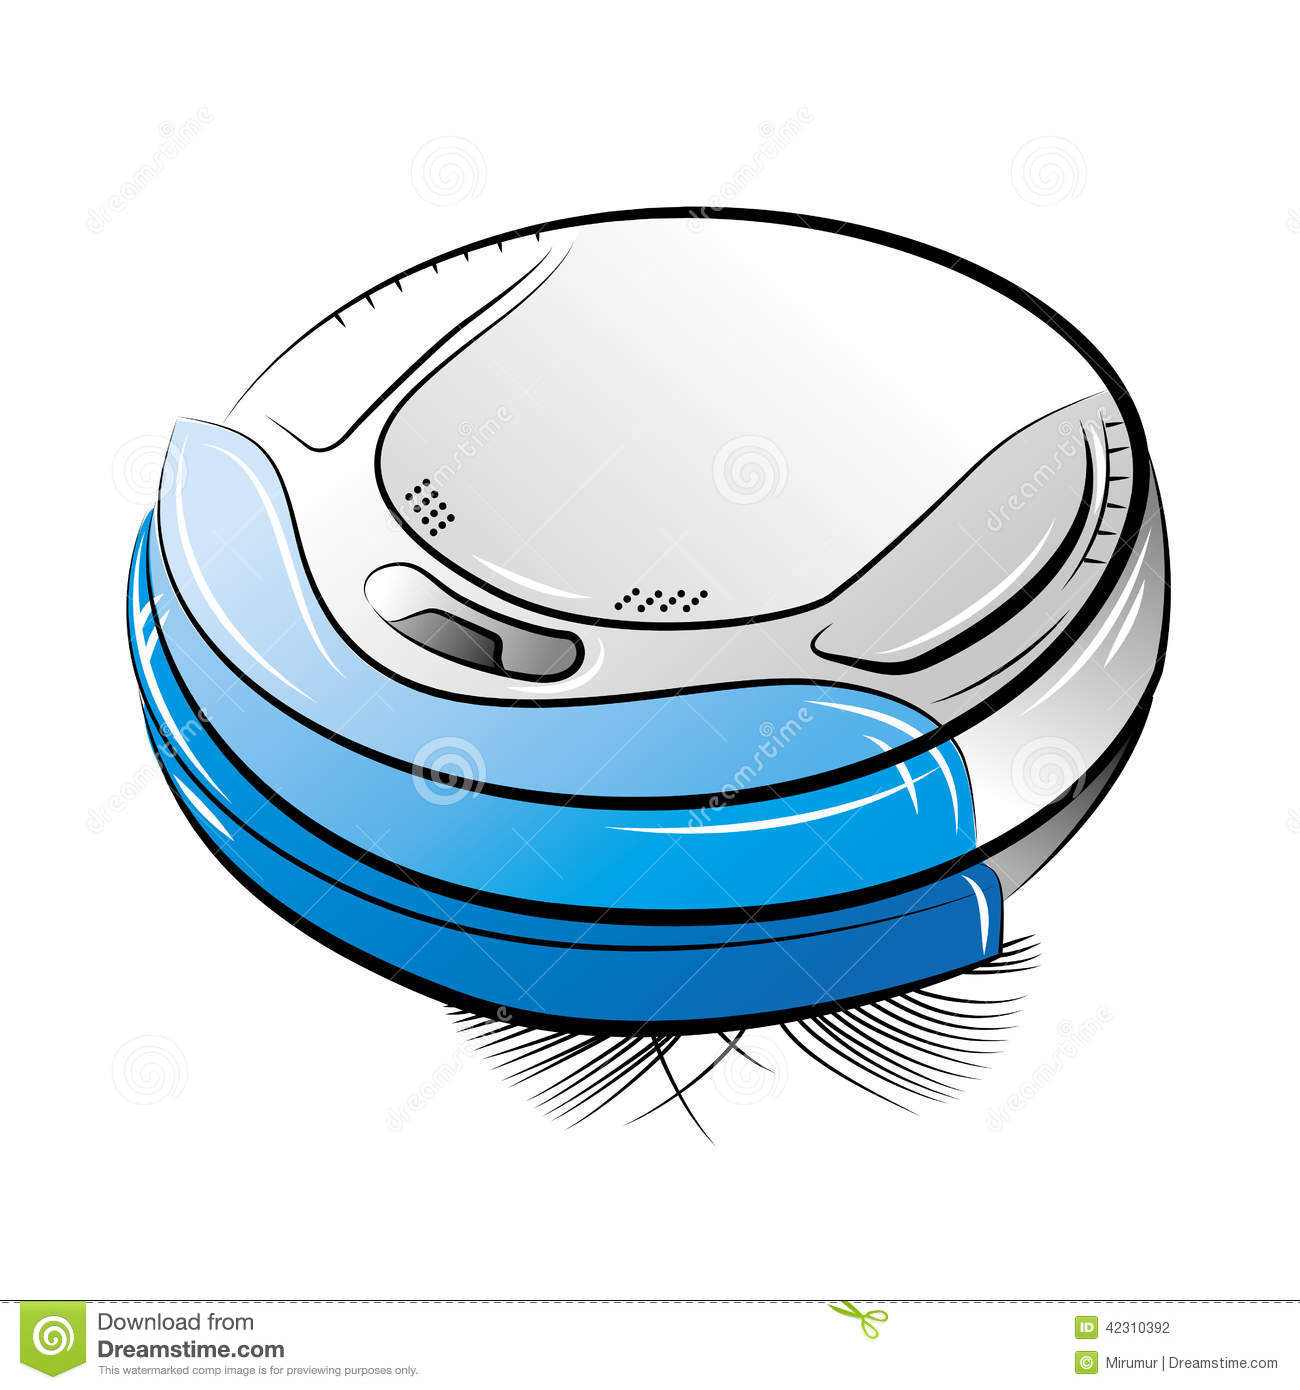 Vacuum cleaner clipart vacuum cleaner clip art - Blue Robotic Vacuum Cleaner Stock Vector